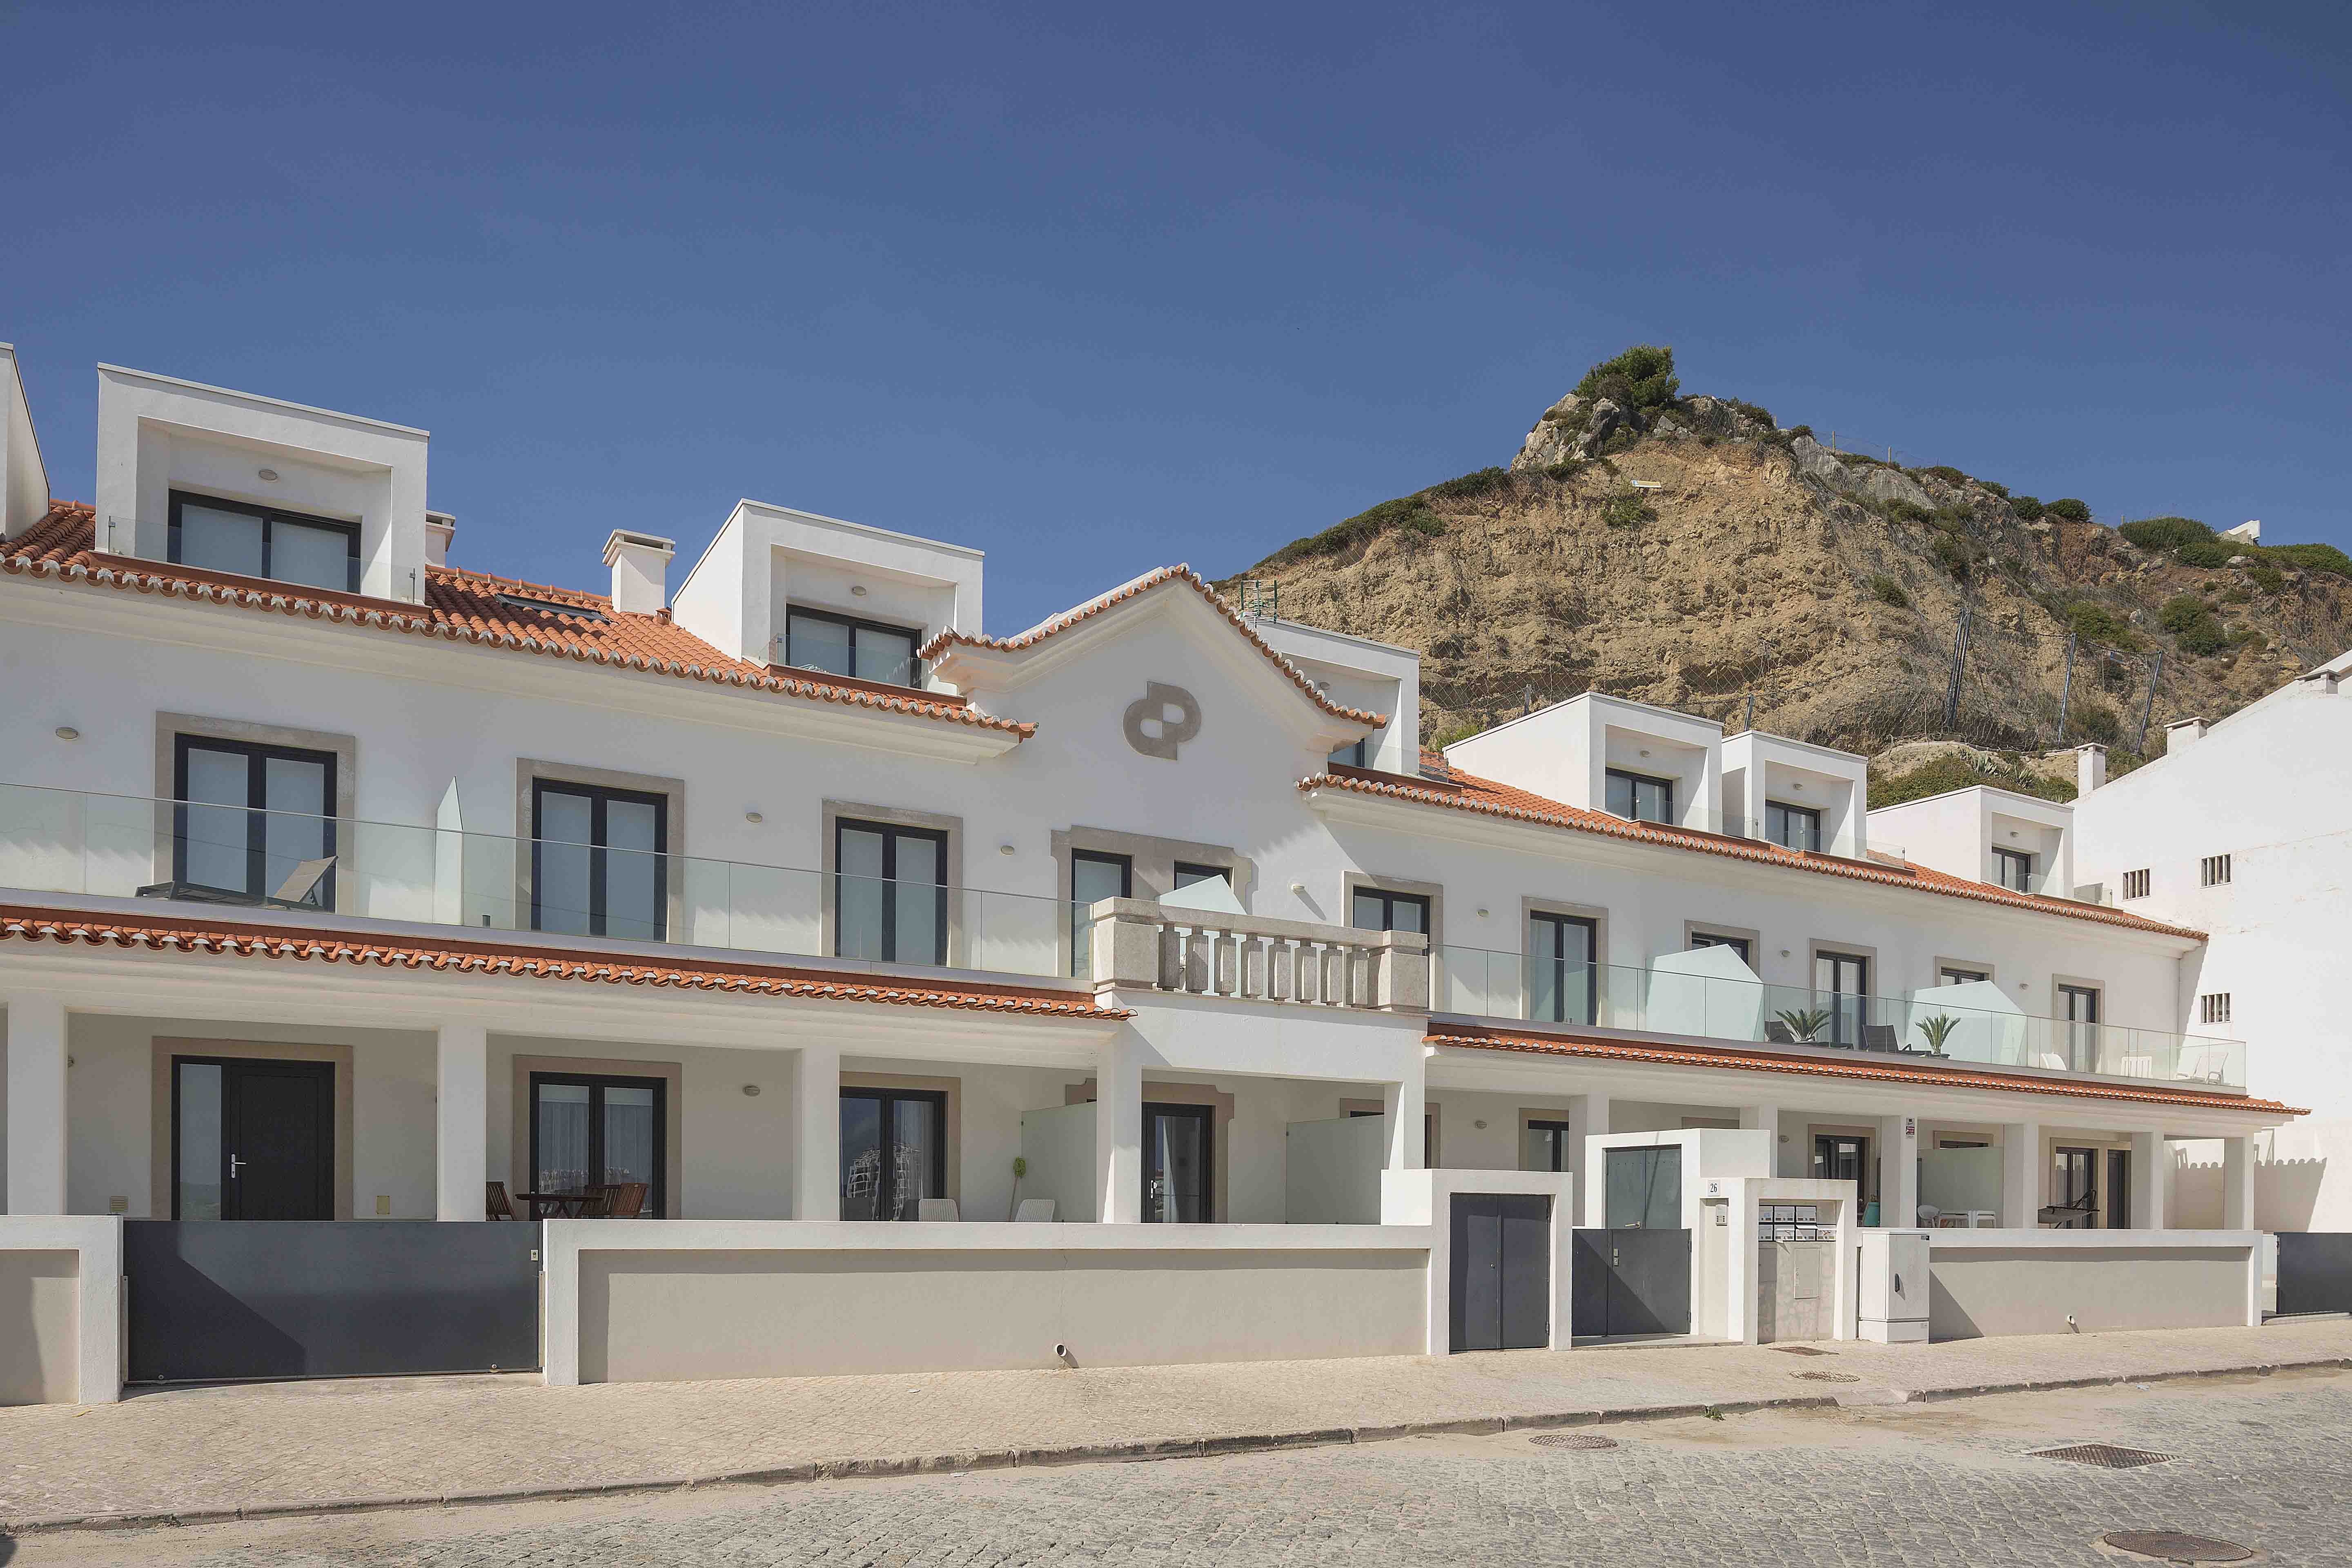 17-cais-sao-martinho-porto-silver-coast-new-buil-construction-portugal-for-sale